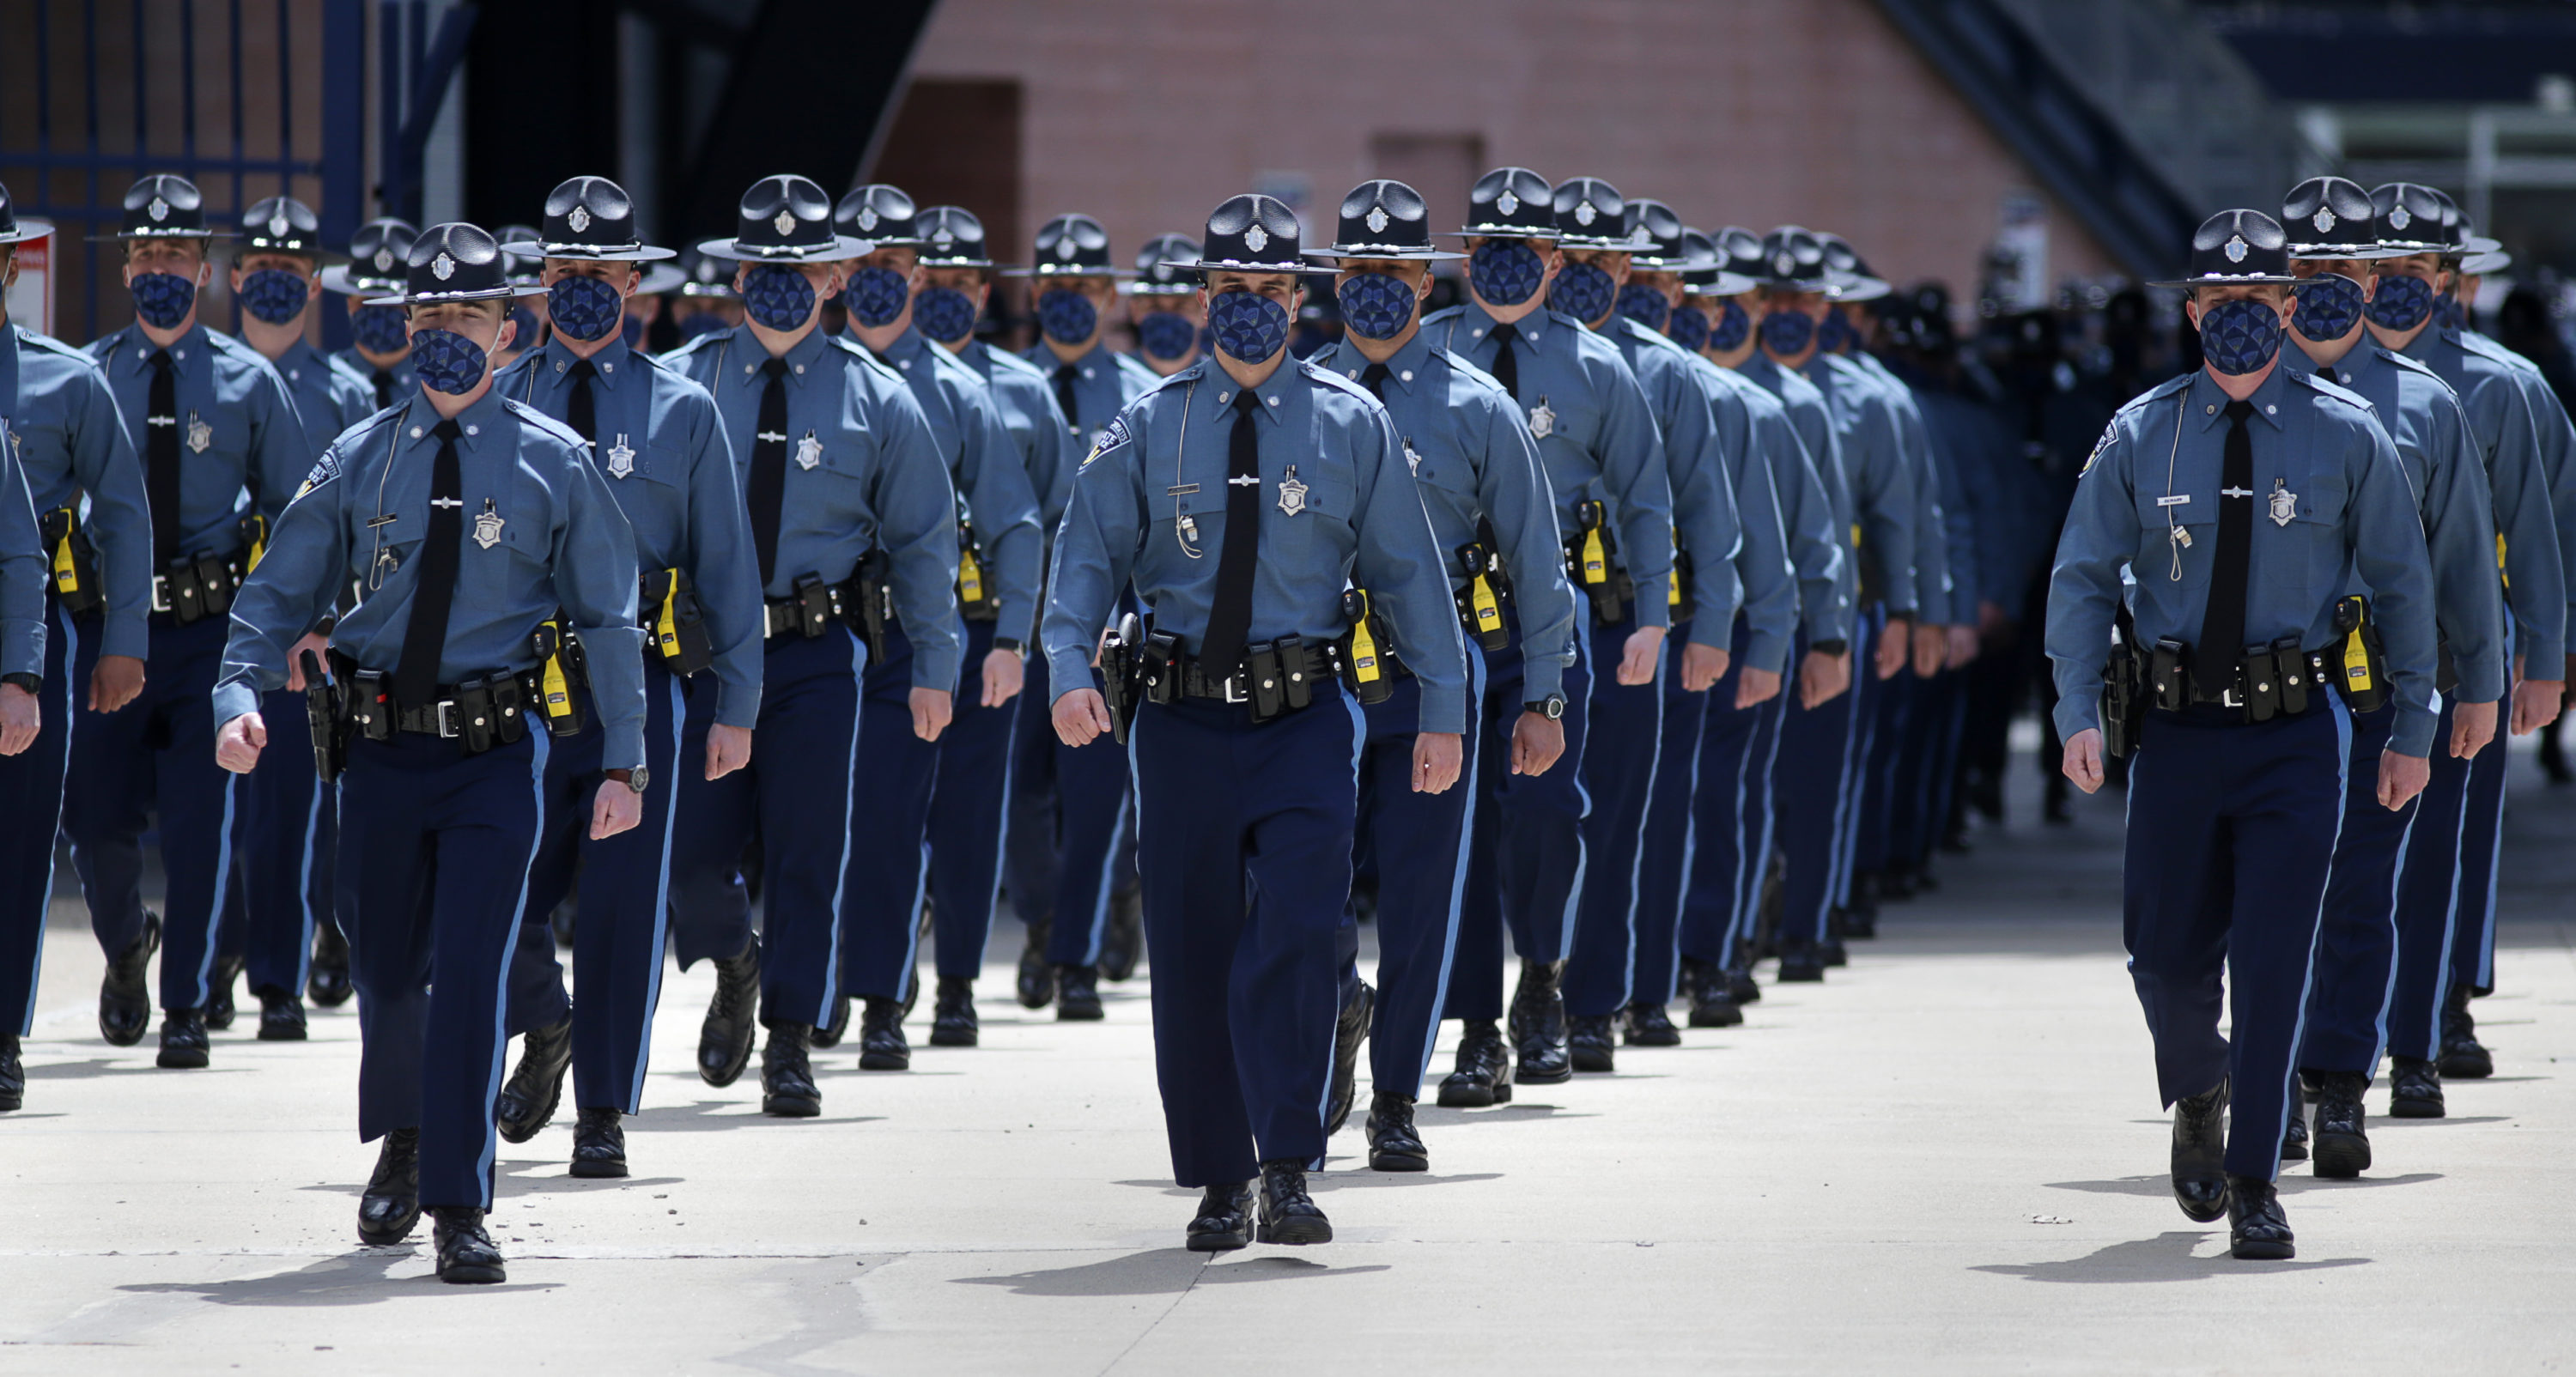 Some of the 240 new Massachusetts State Police troopers as they  marched out of Gillette Stadium after Gov. Charlie Baker swore them in at a graduation ceremony.  (Pool photo/Jonathan Wiggs/The Boston Globe)